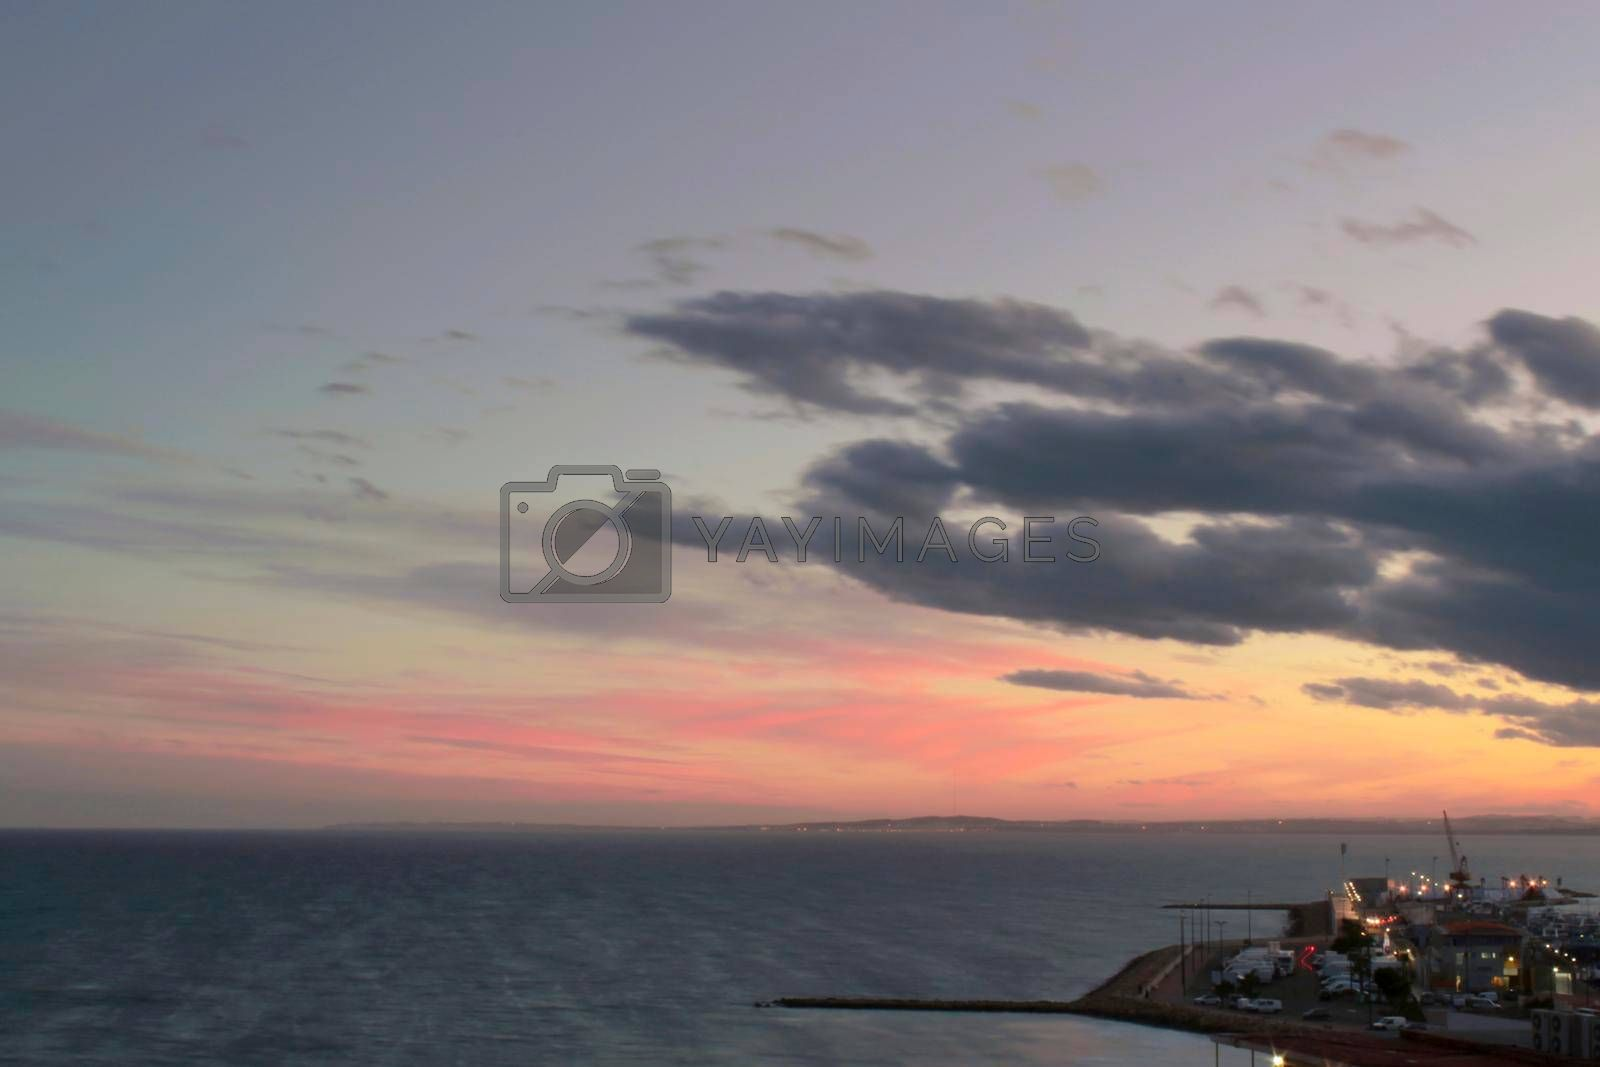 Sunset in Santa Pola, a small fishing village in southern Spain